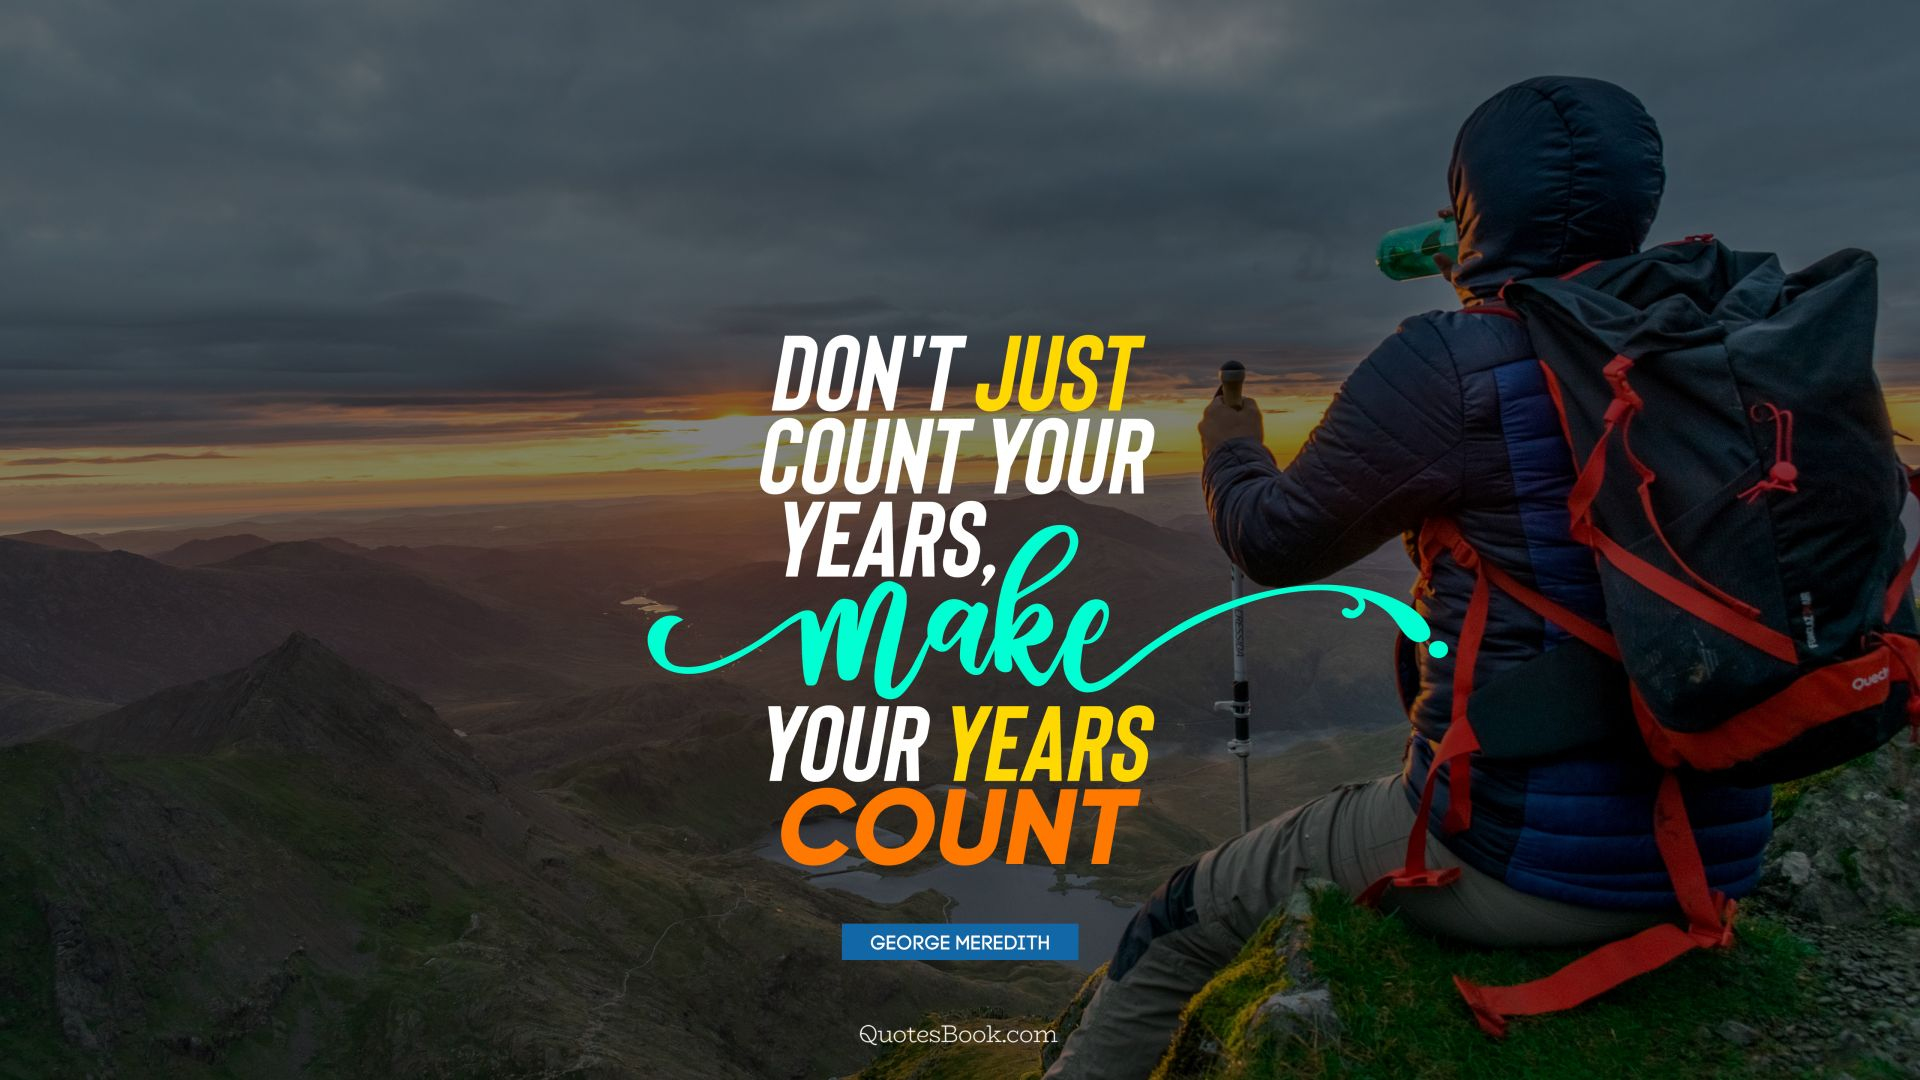 Don't just count your years, make your years count. - Quote by George Meredith